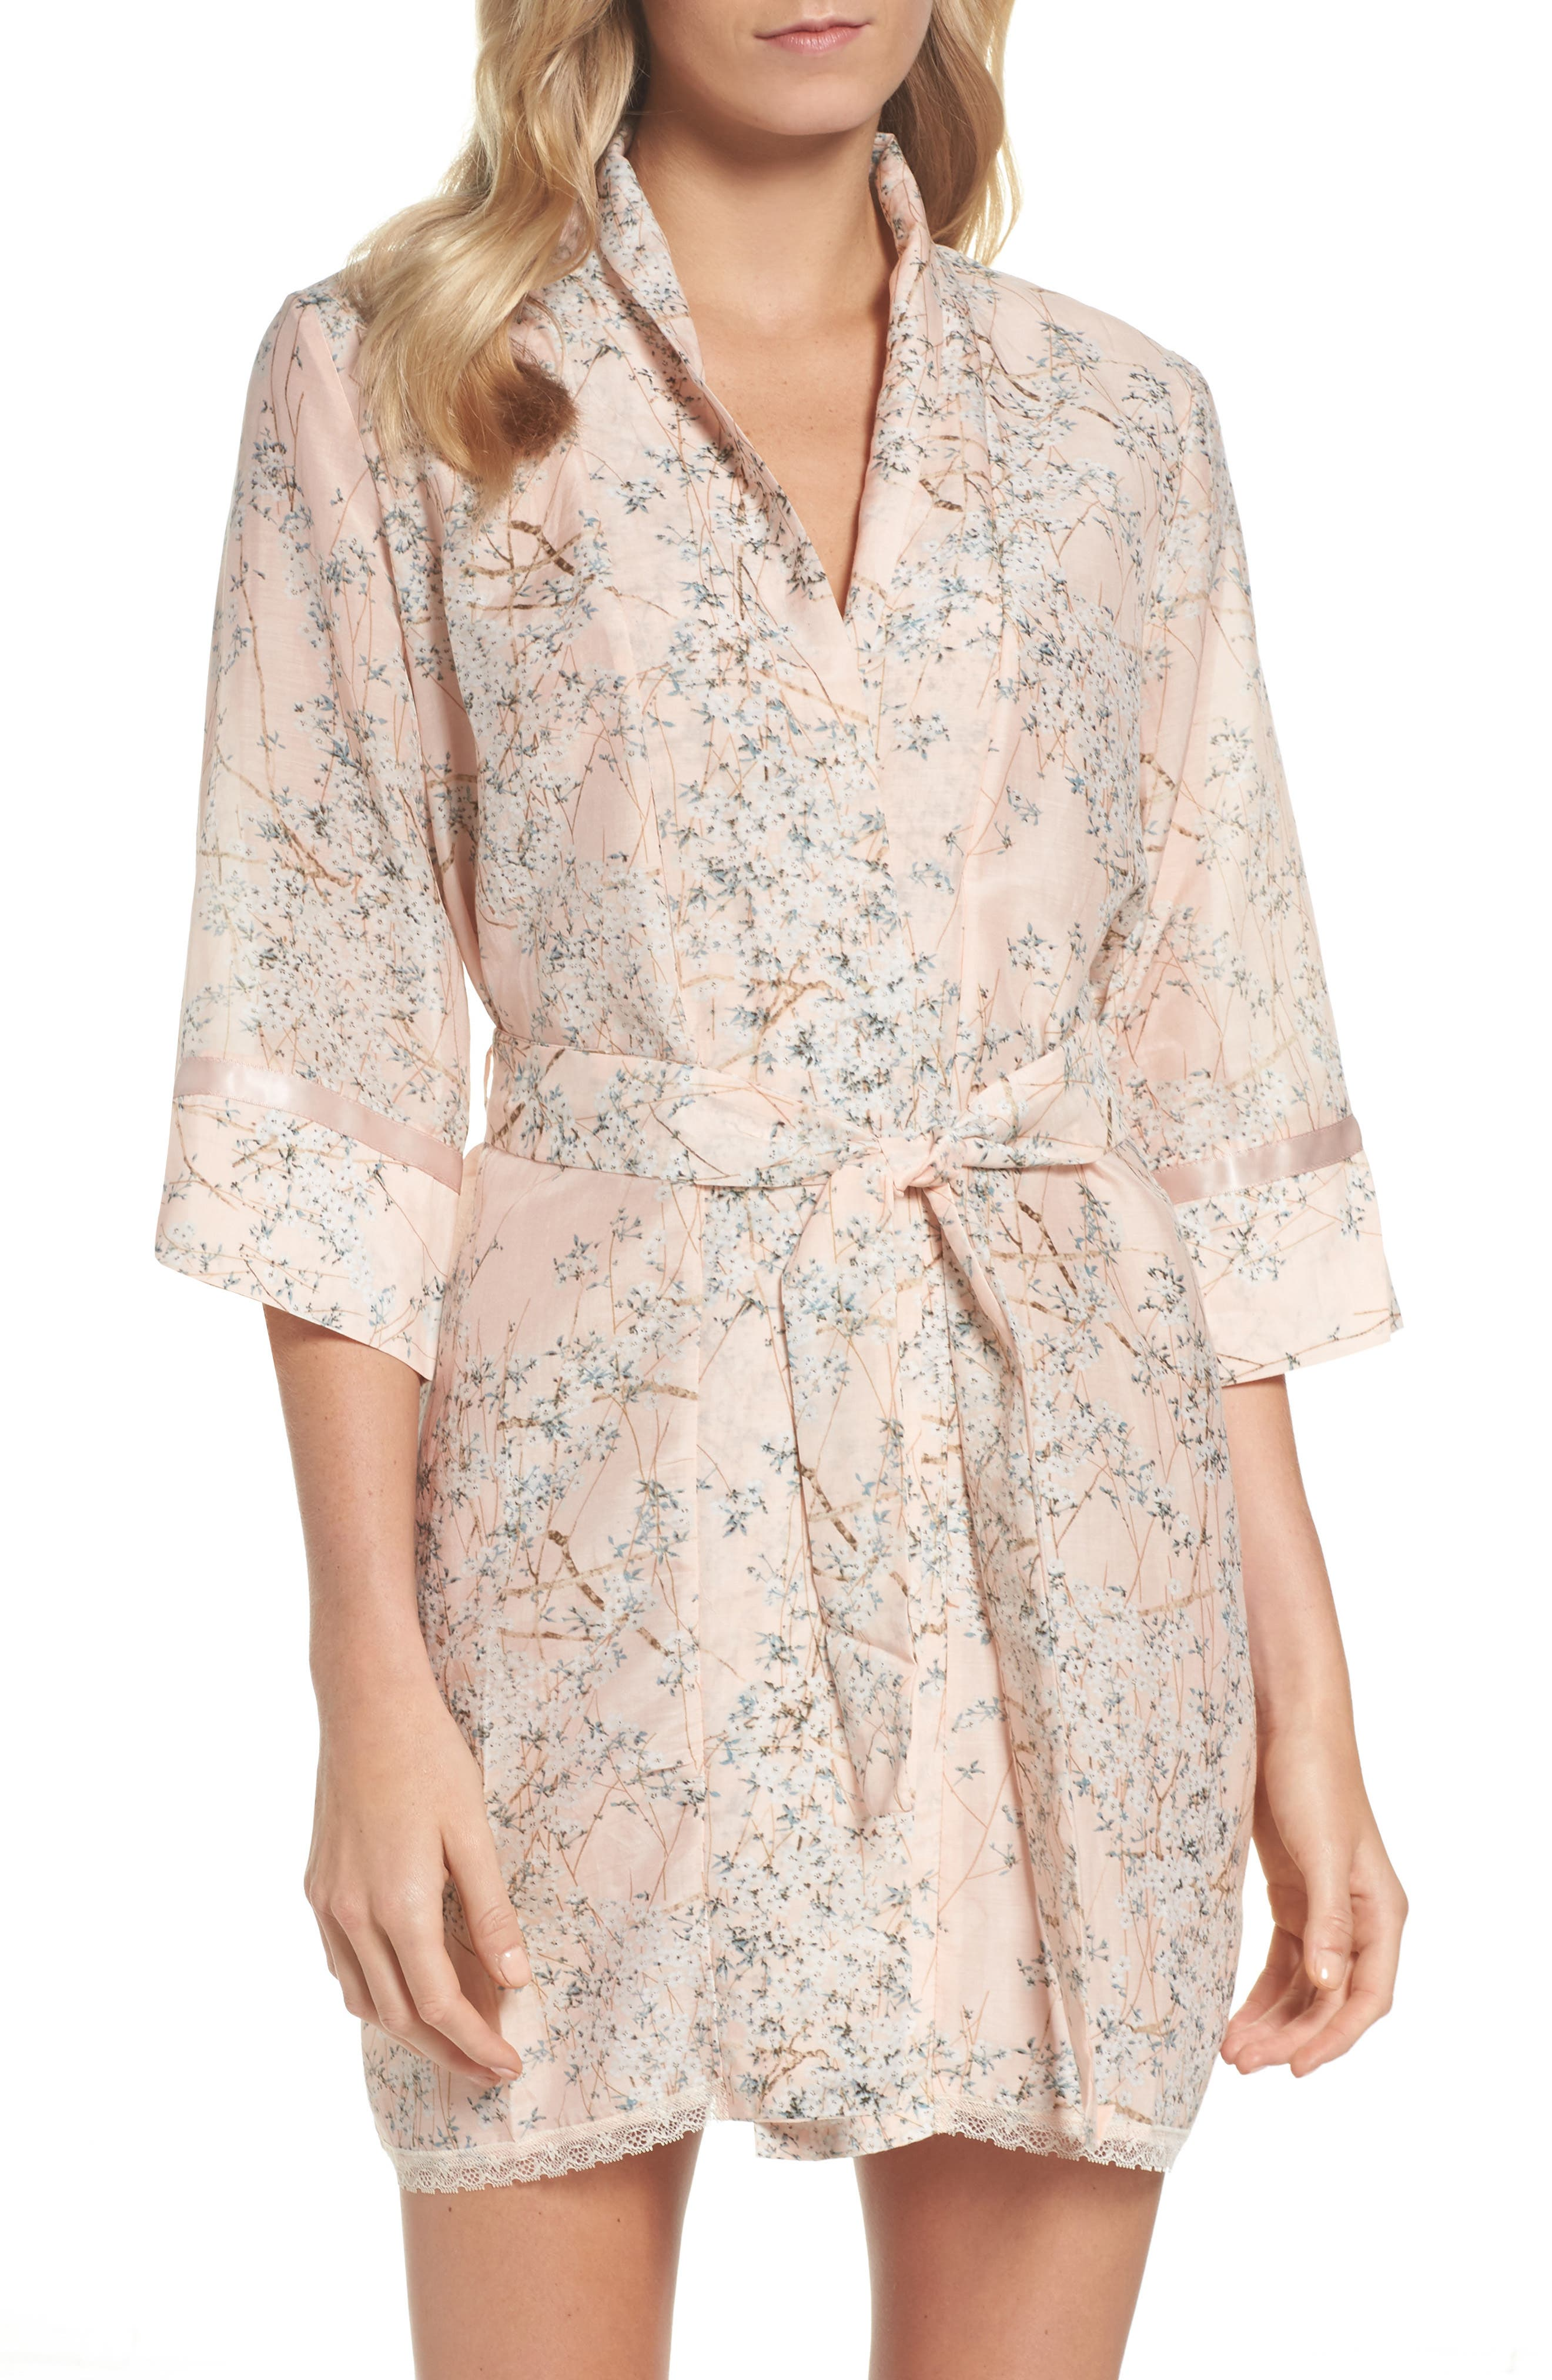 PAPINELLE Cherry Blossom Cotton & Silk Short Robe, Main, color, 950